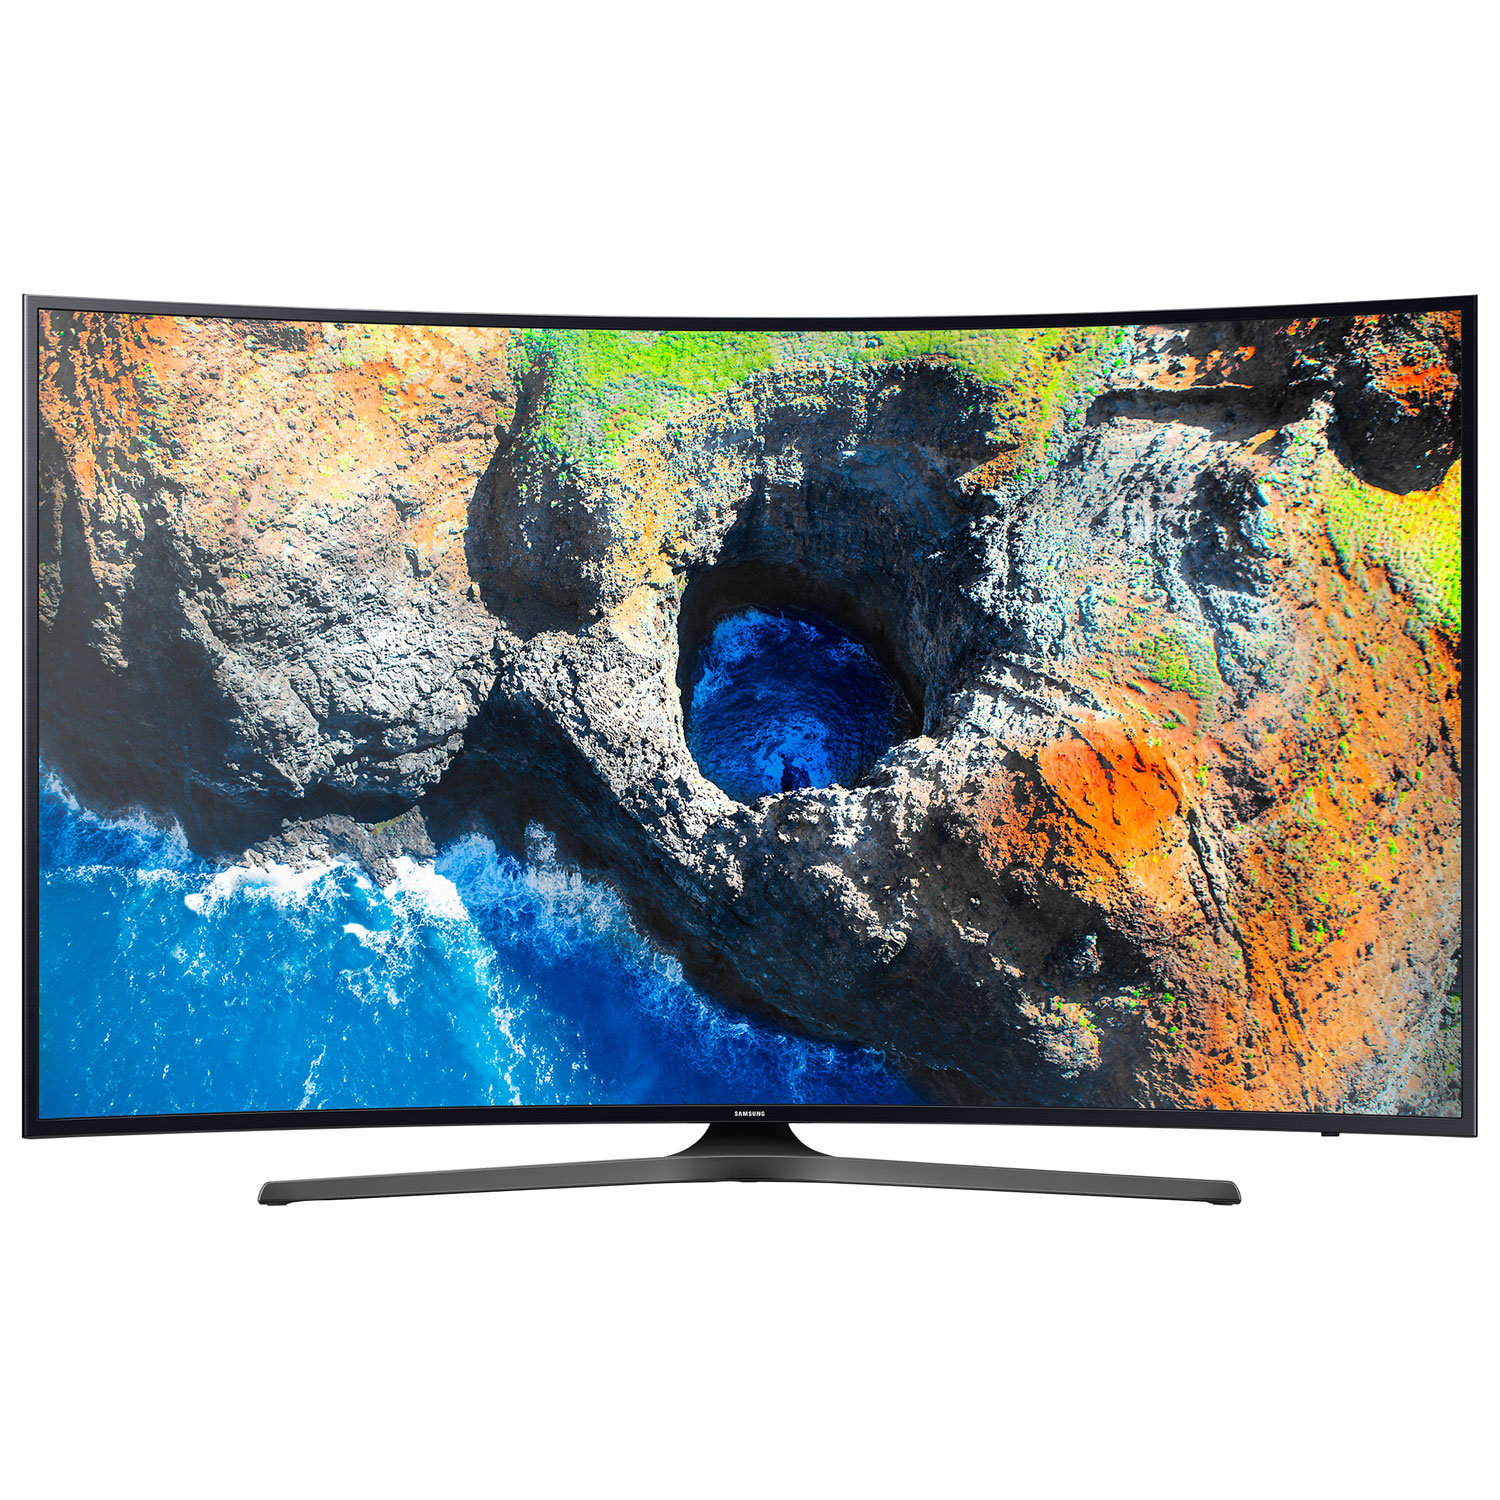 Televisions TVs Home Theatre Systems Best Buy Canada